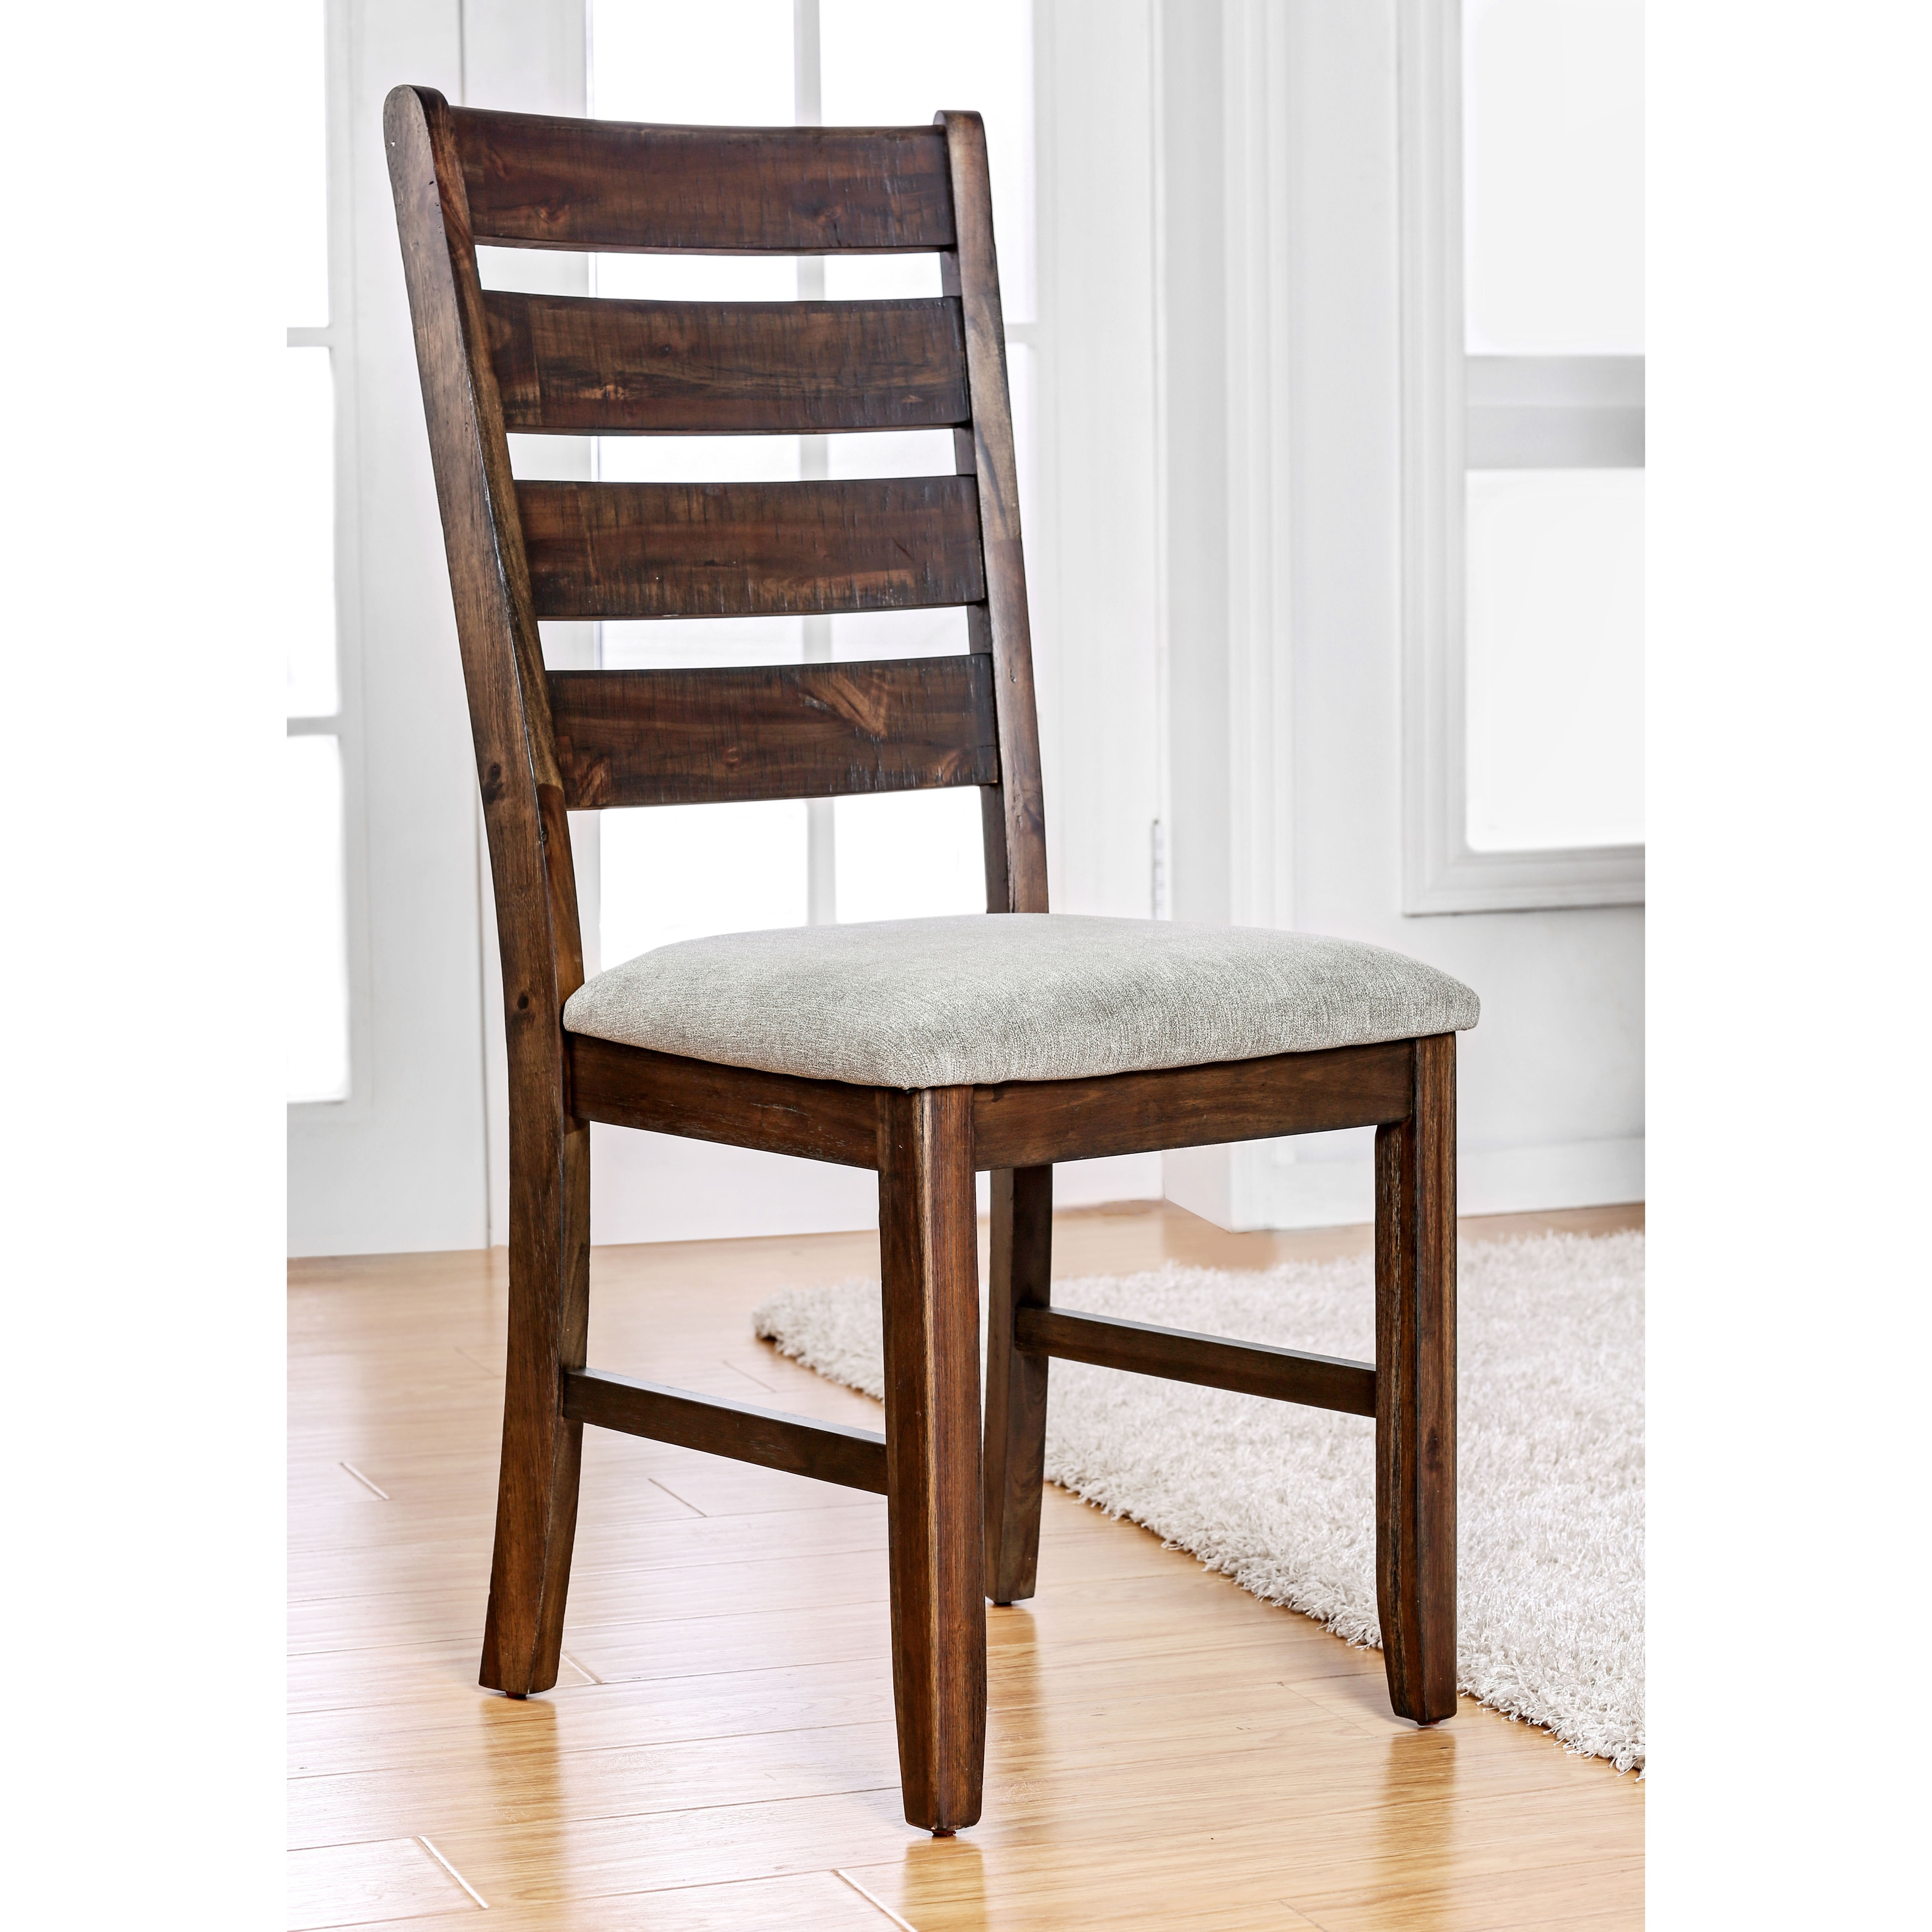 Furniture of America  Morlo Rustic Slatted Walnut Dining Chairs (Set of 2)